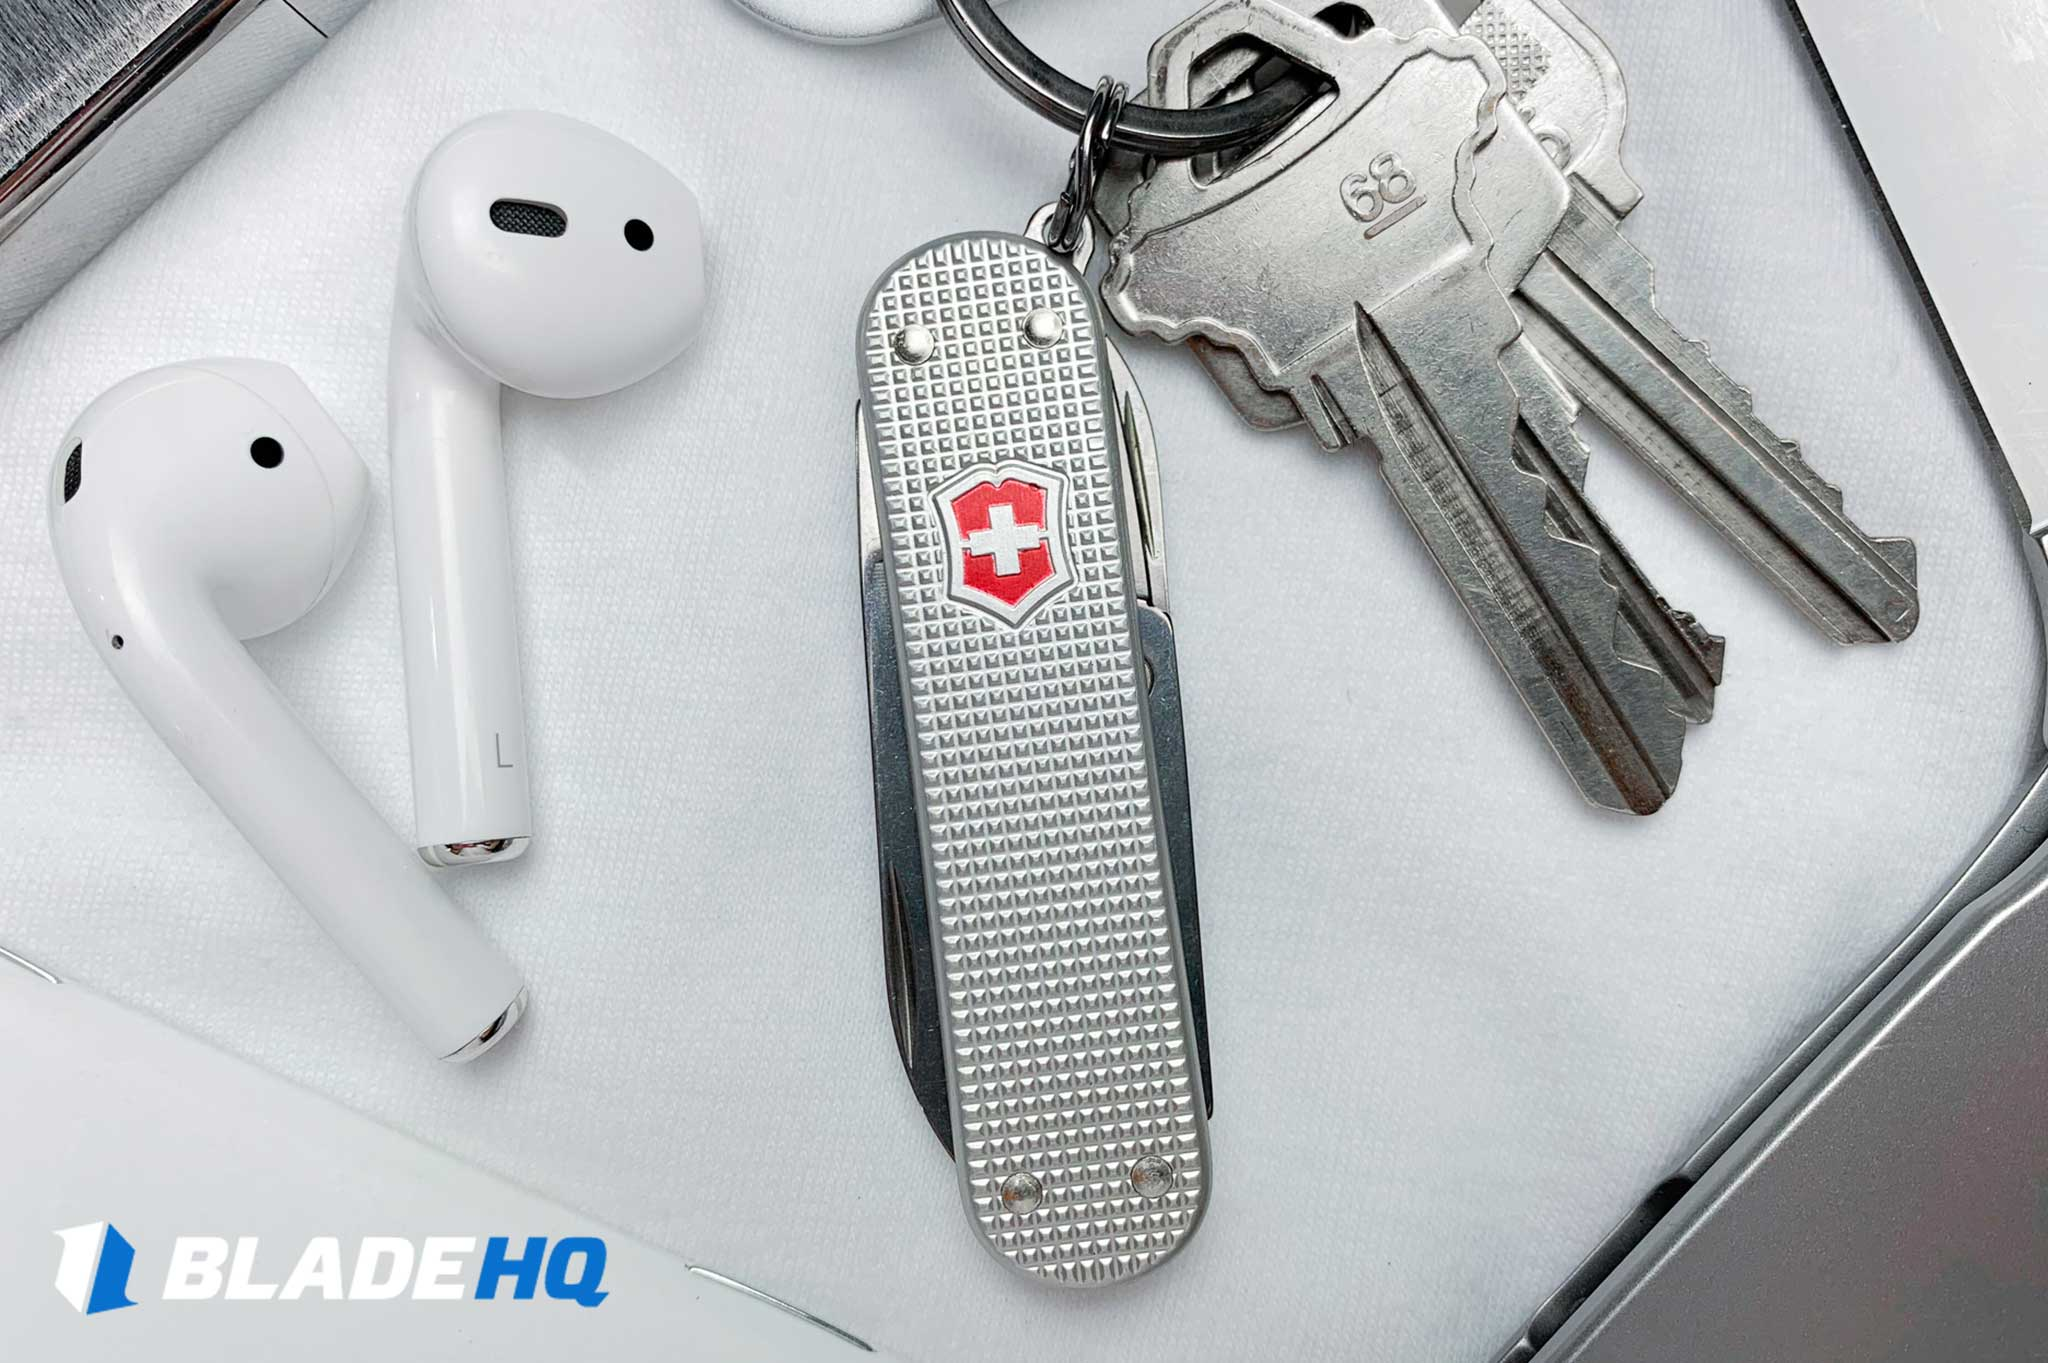 Victorinox Classic SD Knife Materials